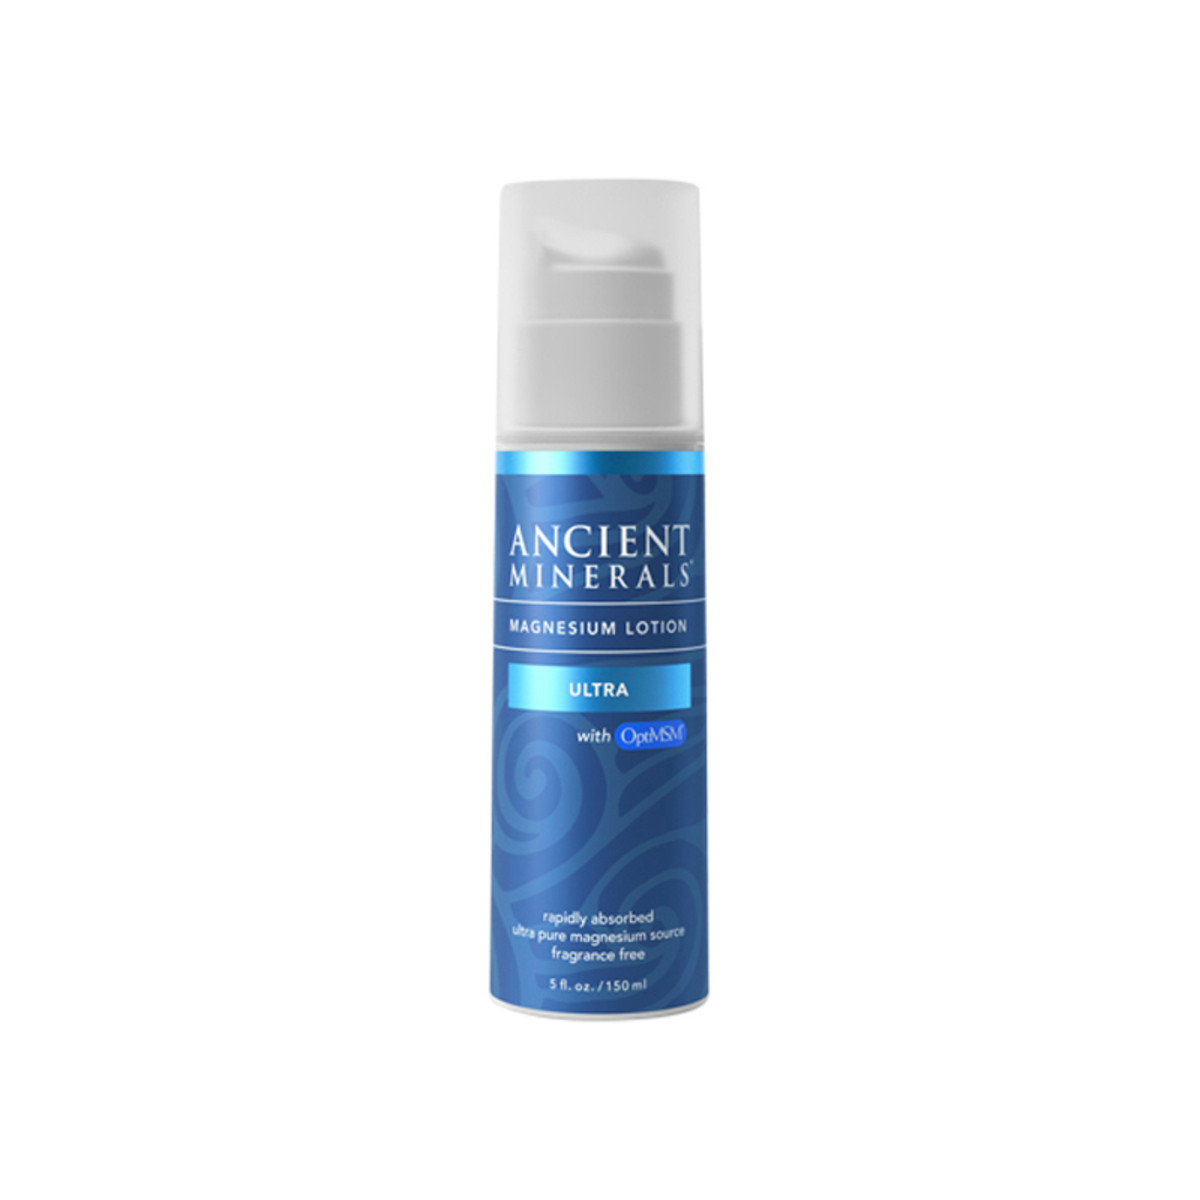 Ancient Minerals Magnesium Lotion Ultra 237ml + FREE SAMPLES